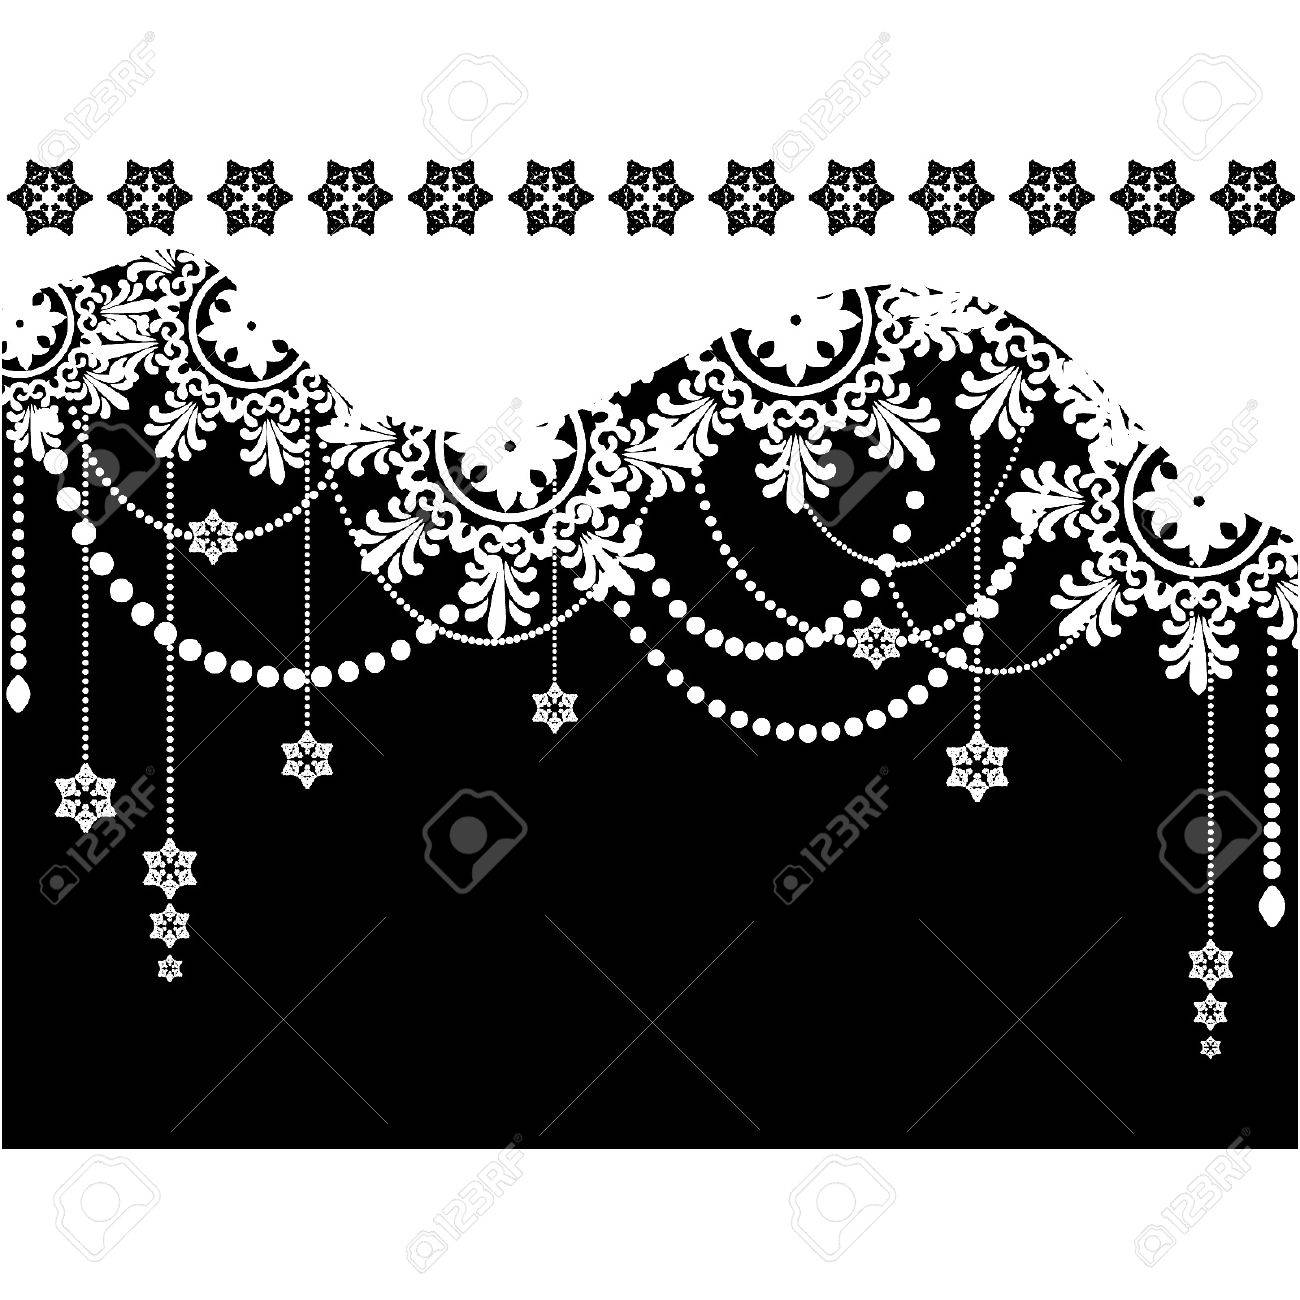 Snowflake winter background. Stock Vector - 11564291